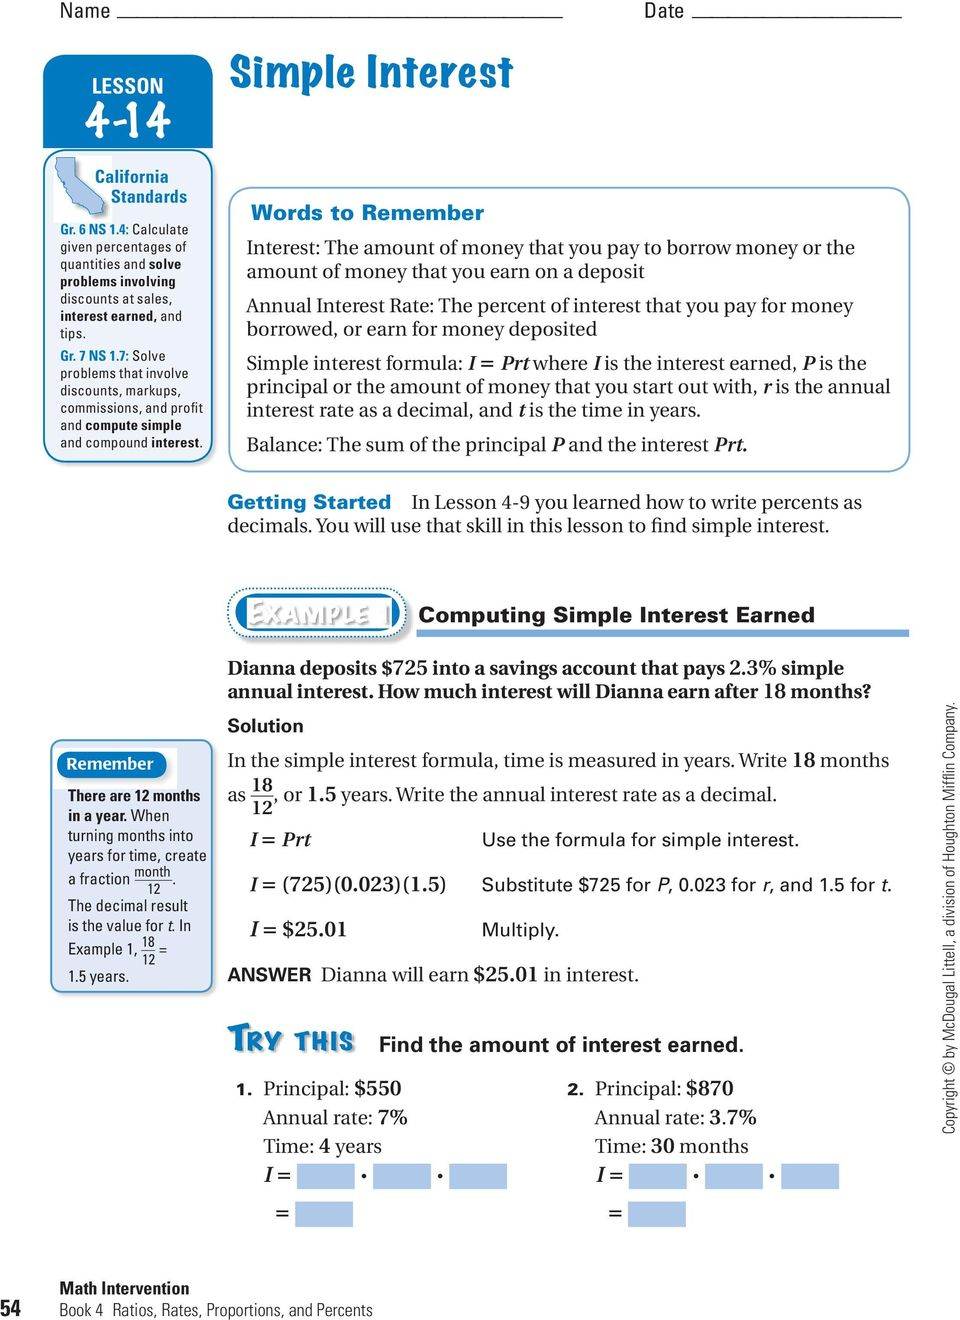 Simple And Compound Interest Worksheet Answers Ukrobstep – Simple and Compound Interest Worksheet